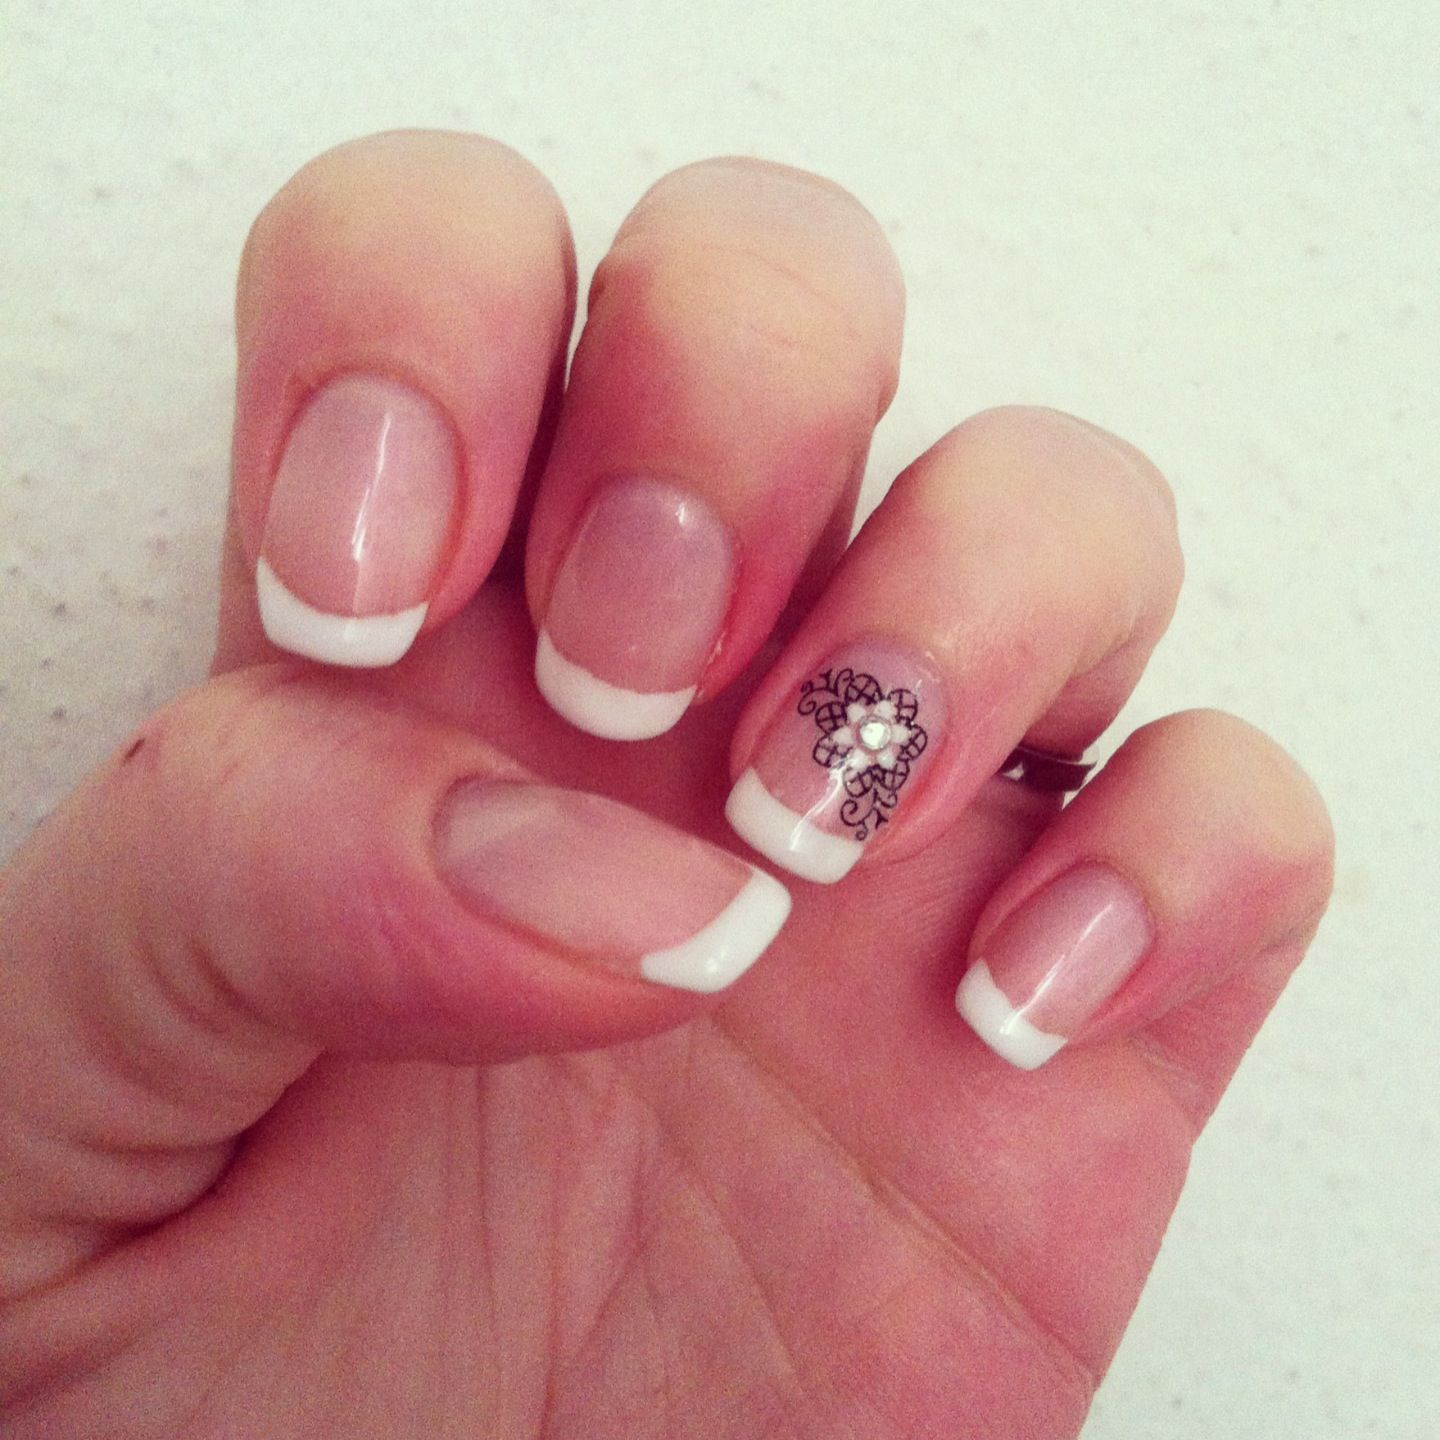 Shellac wedding nails with design on ring finger | Wedding day hair ...